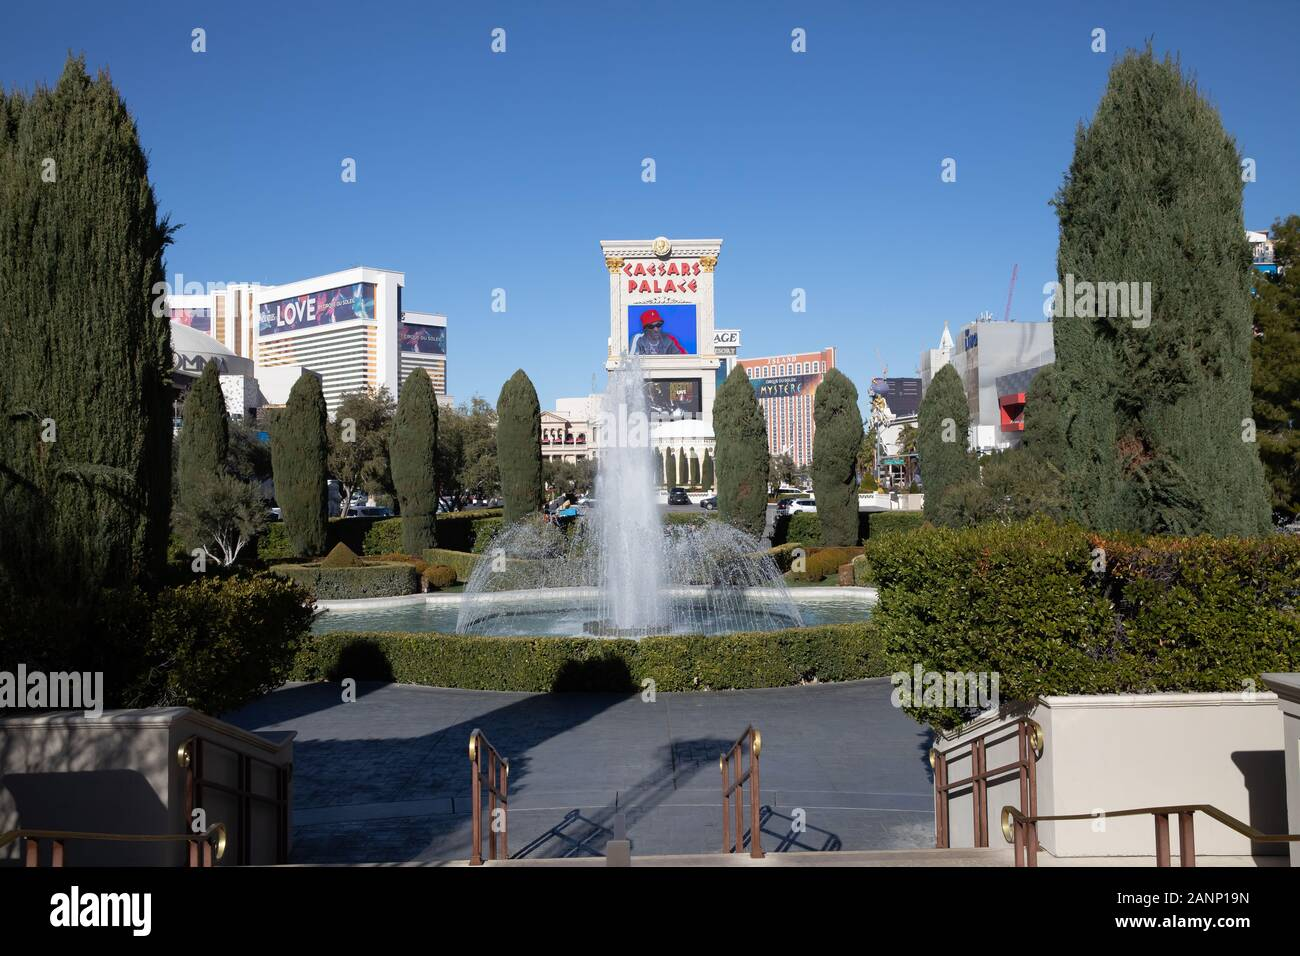 Water Fountains in front of Caesers Palace Hotel in Las Vegas, Nevada, USA Stock Photo